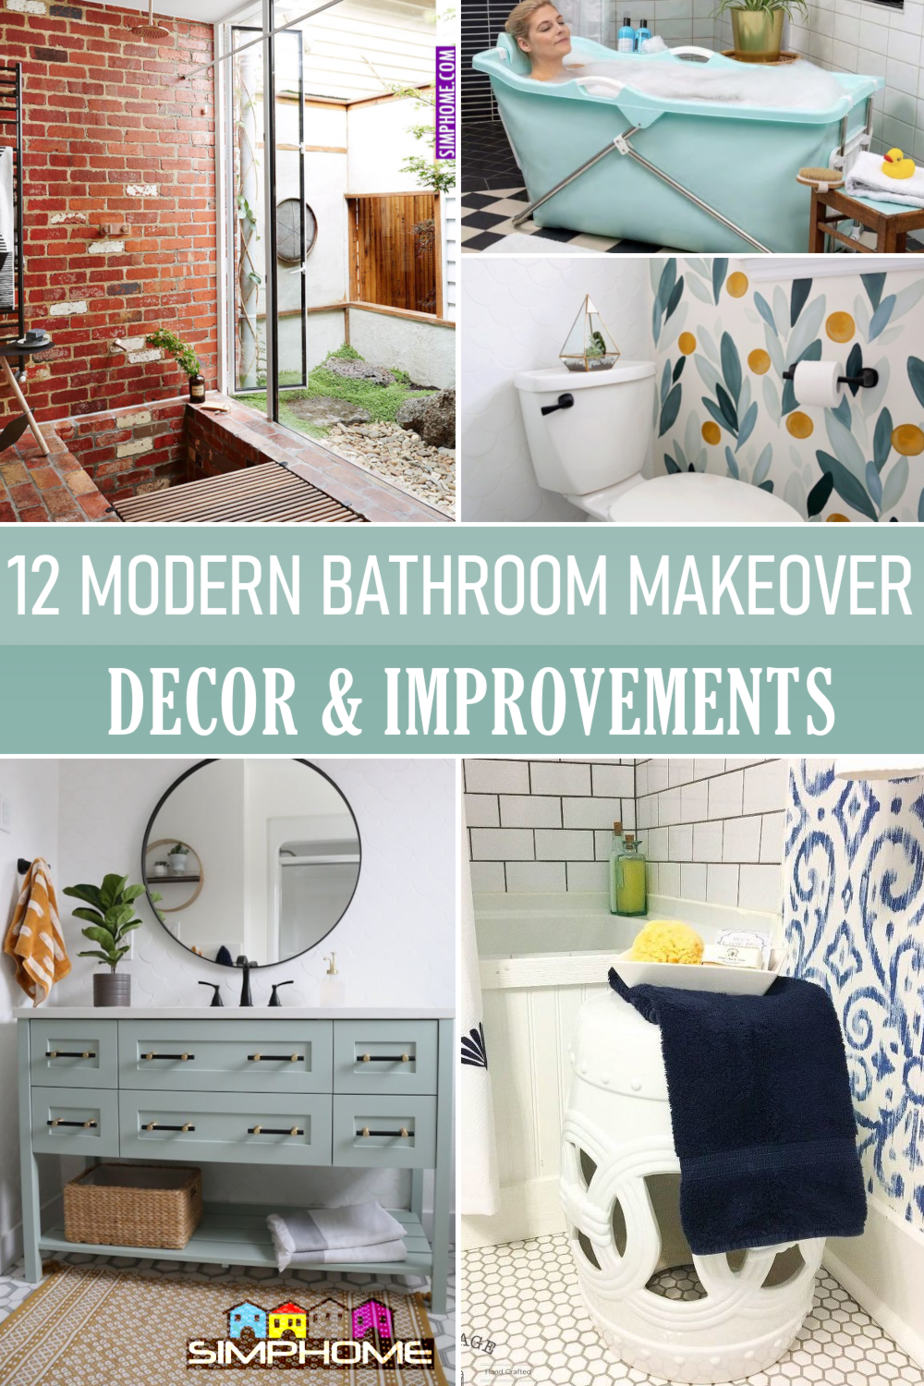 Modern Bathroom Makeovers via Simphome.comFeatured Poster image